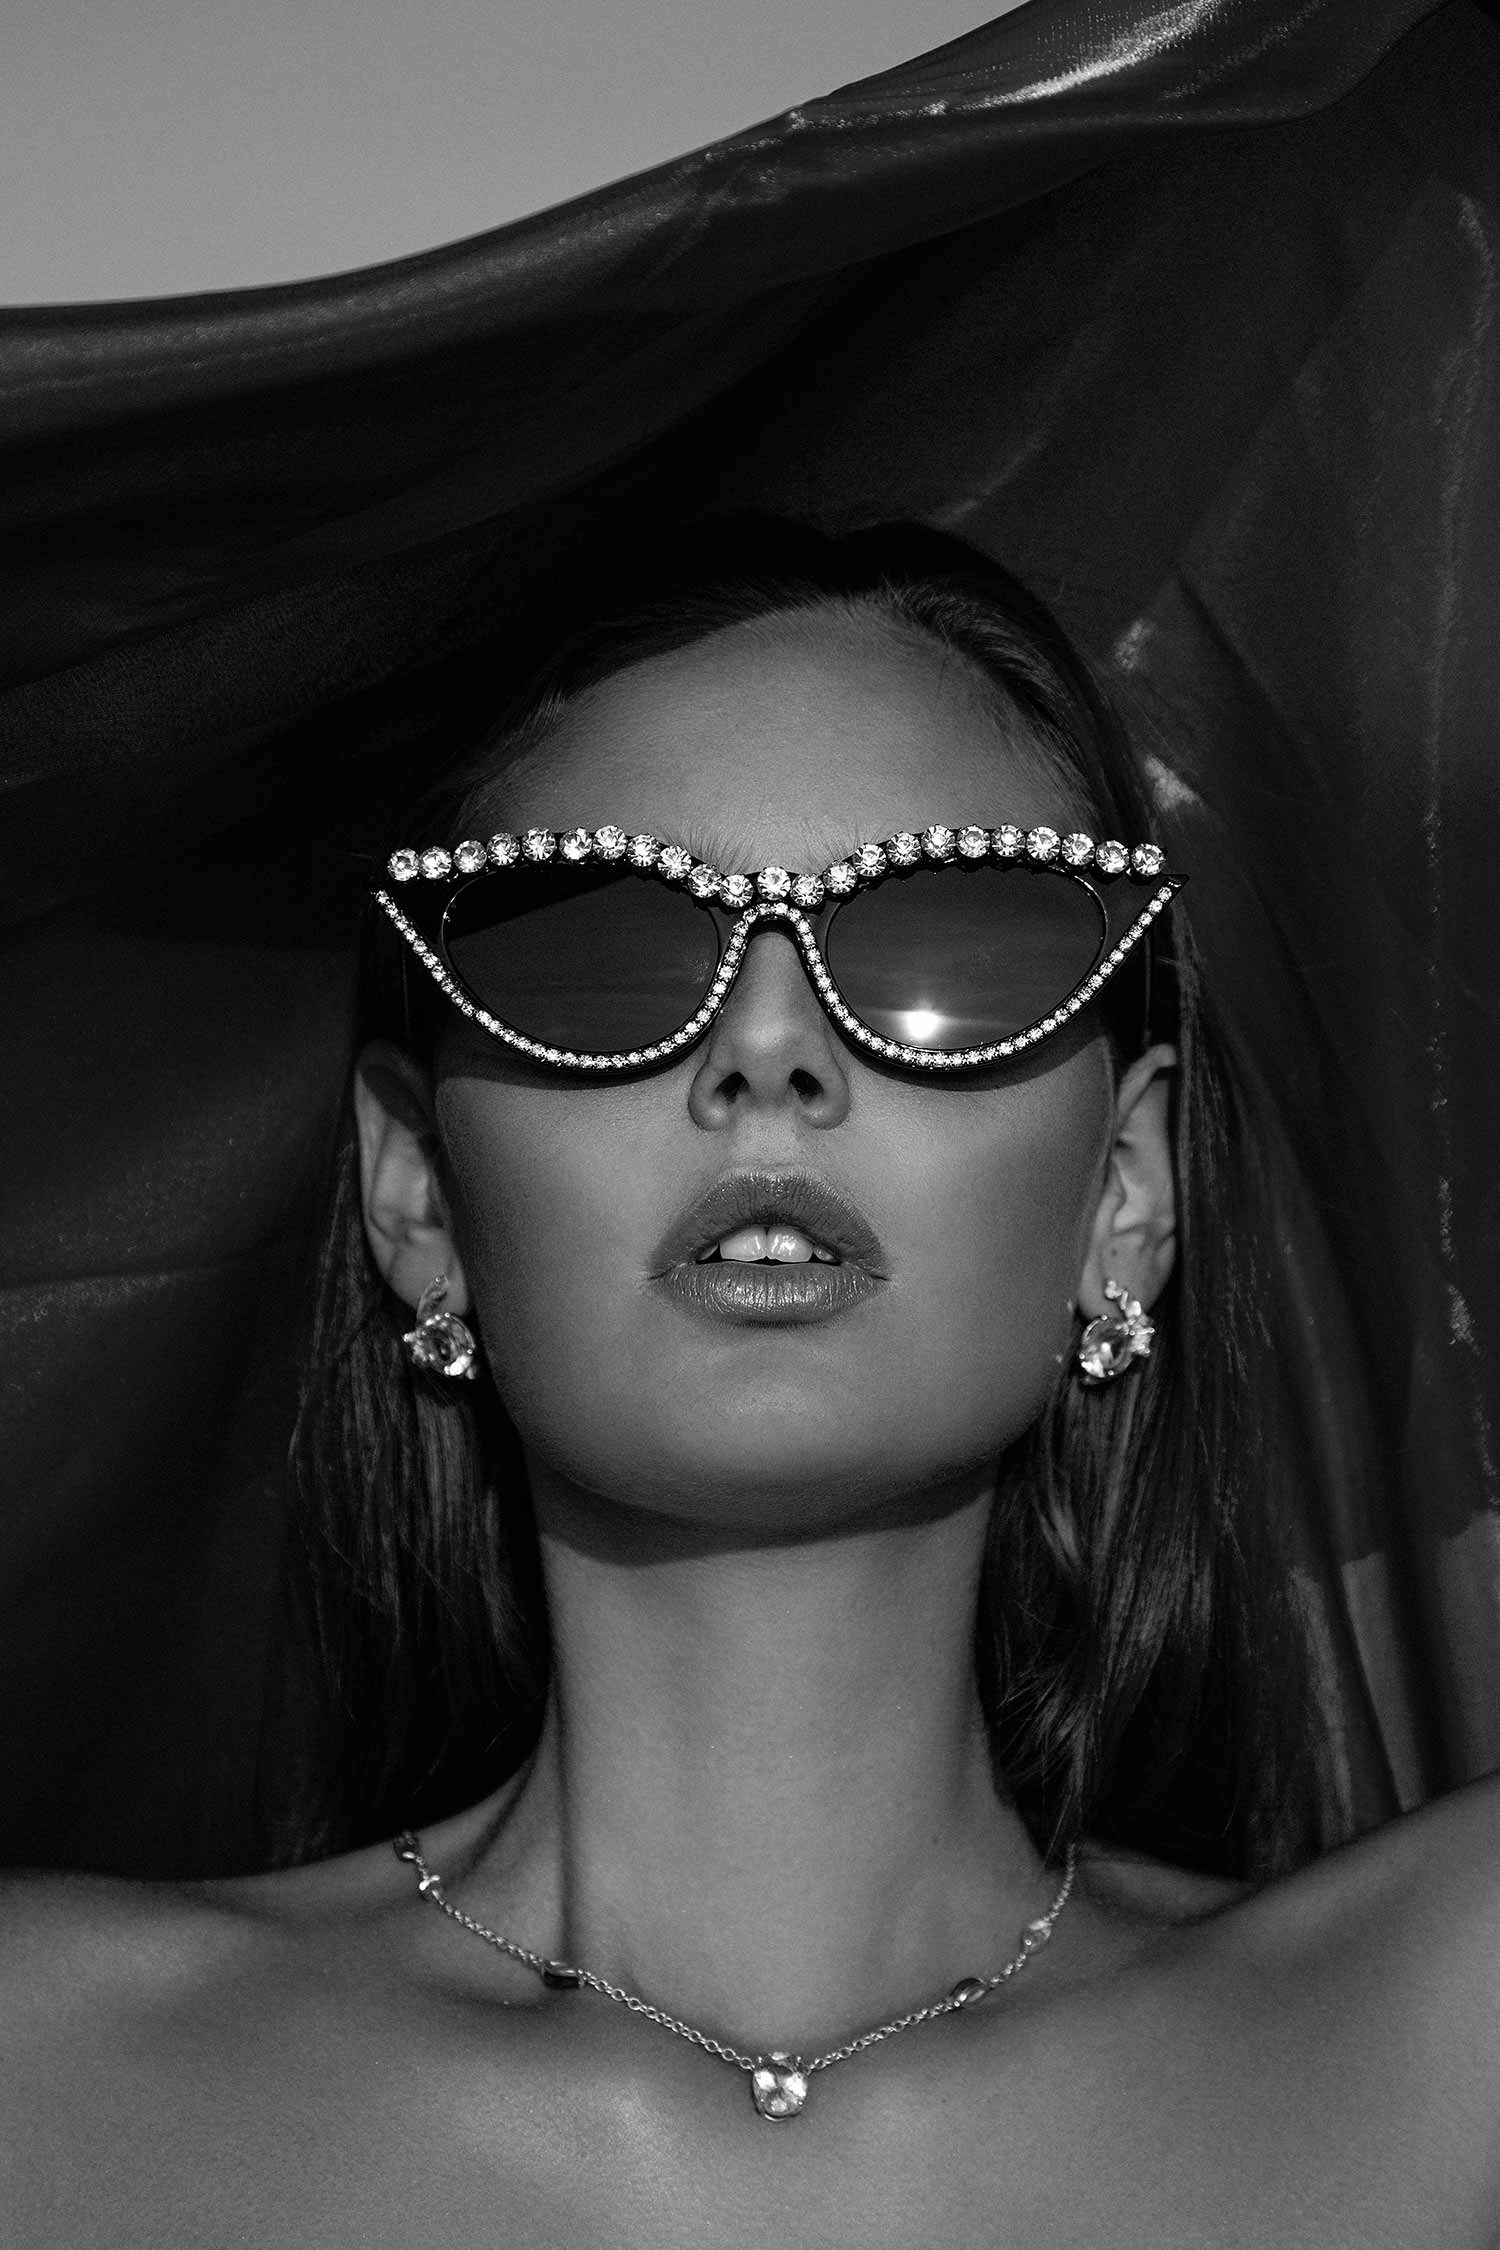 Black and white image of model with Zydrune statement jewellery and black diamante sunglasses.